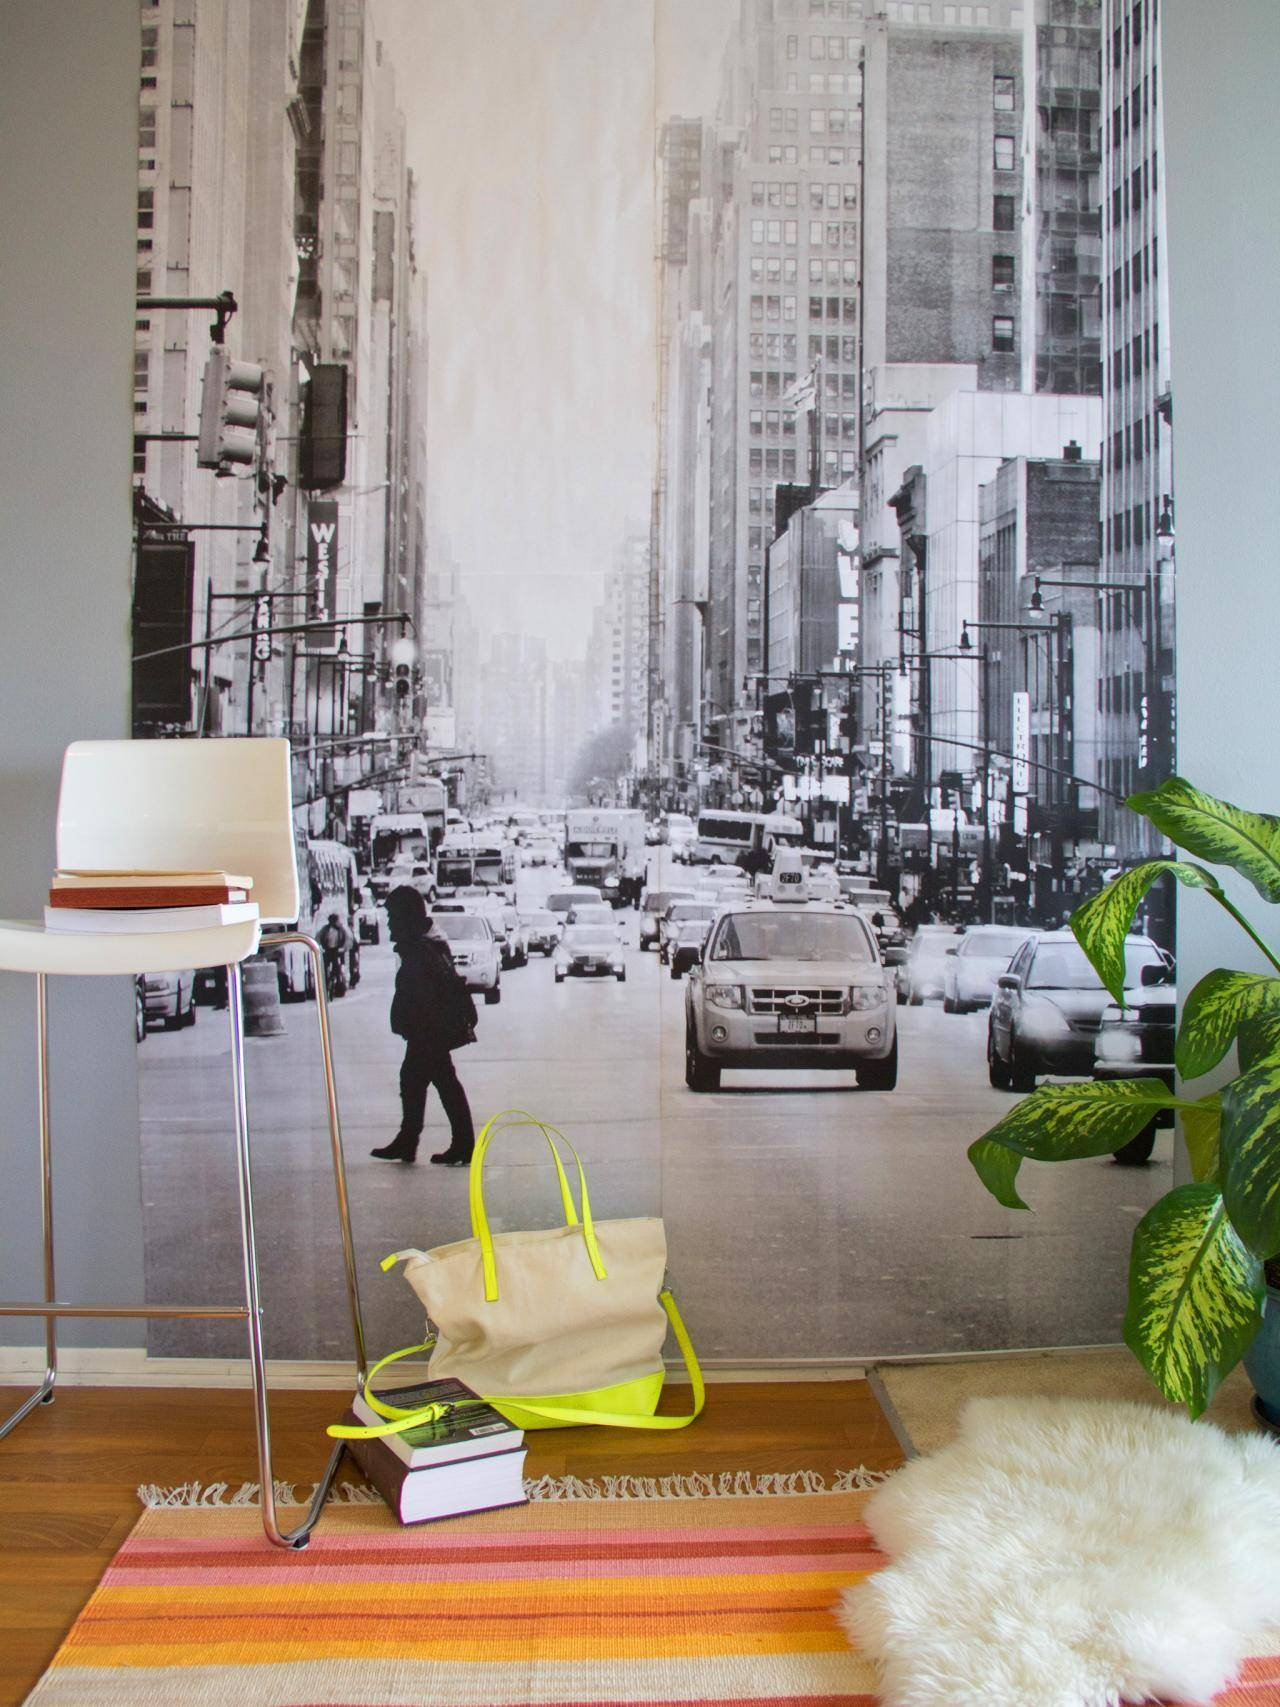 7 Diy Art Projects To Try | Hgtv's Decorating & Design Blog | Hgtv Intended For 2018 Big Cheap Wall Art (Gallery 10 of 20)